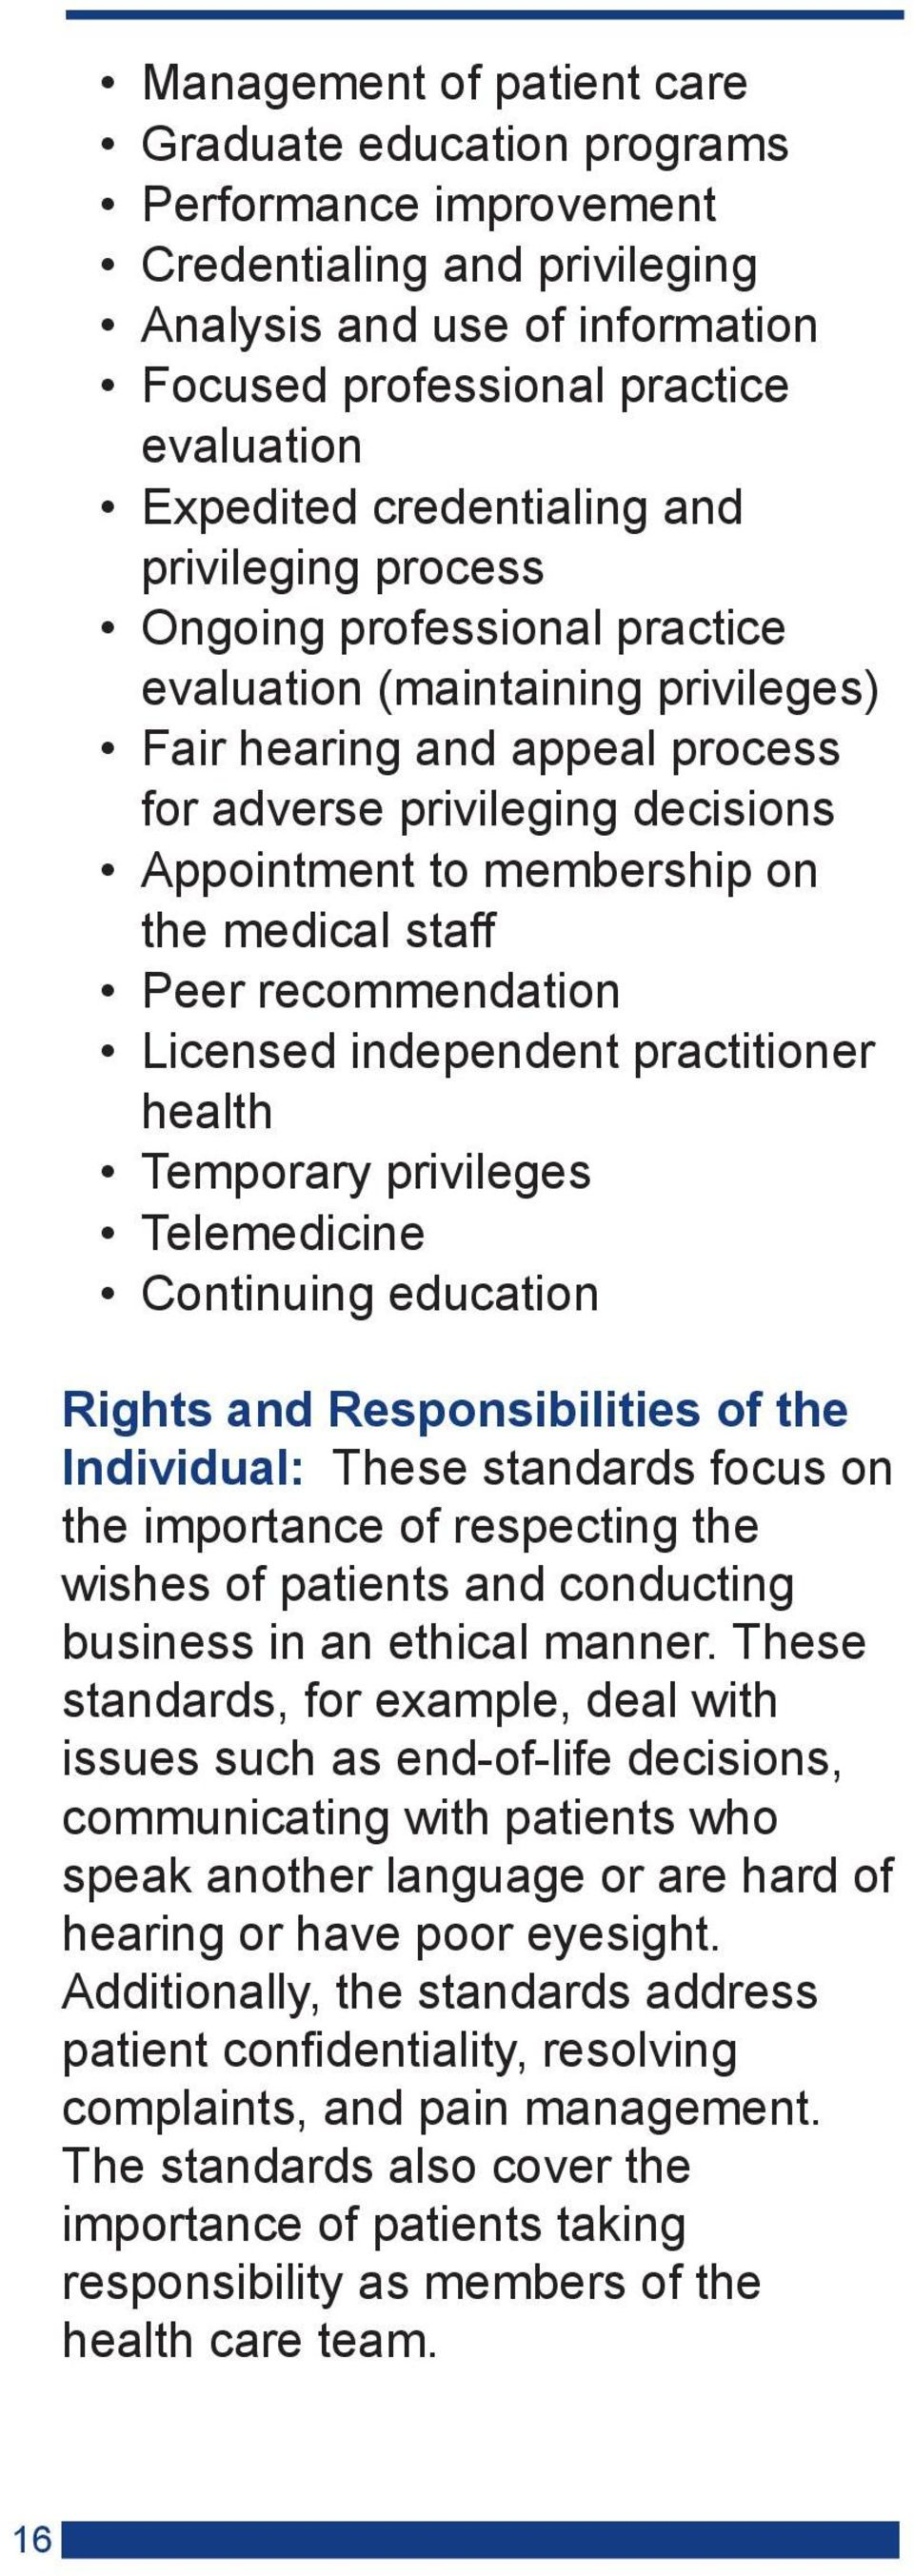 the medical staff Peer recommendation Licensed independent practitioner health Temporary privileges Telemedicine Continuing education Rights and Responsibilities of the Individual: These standards